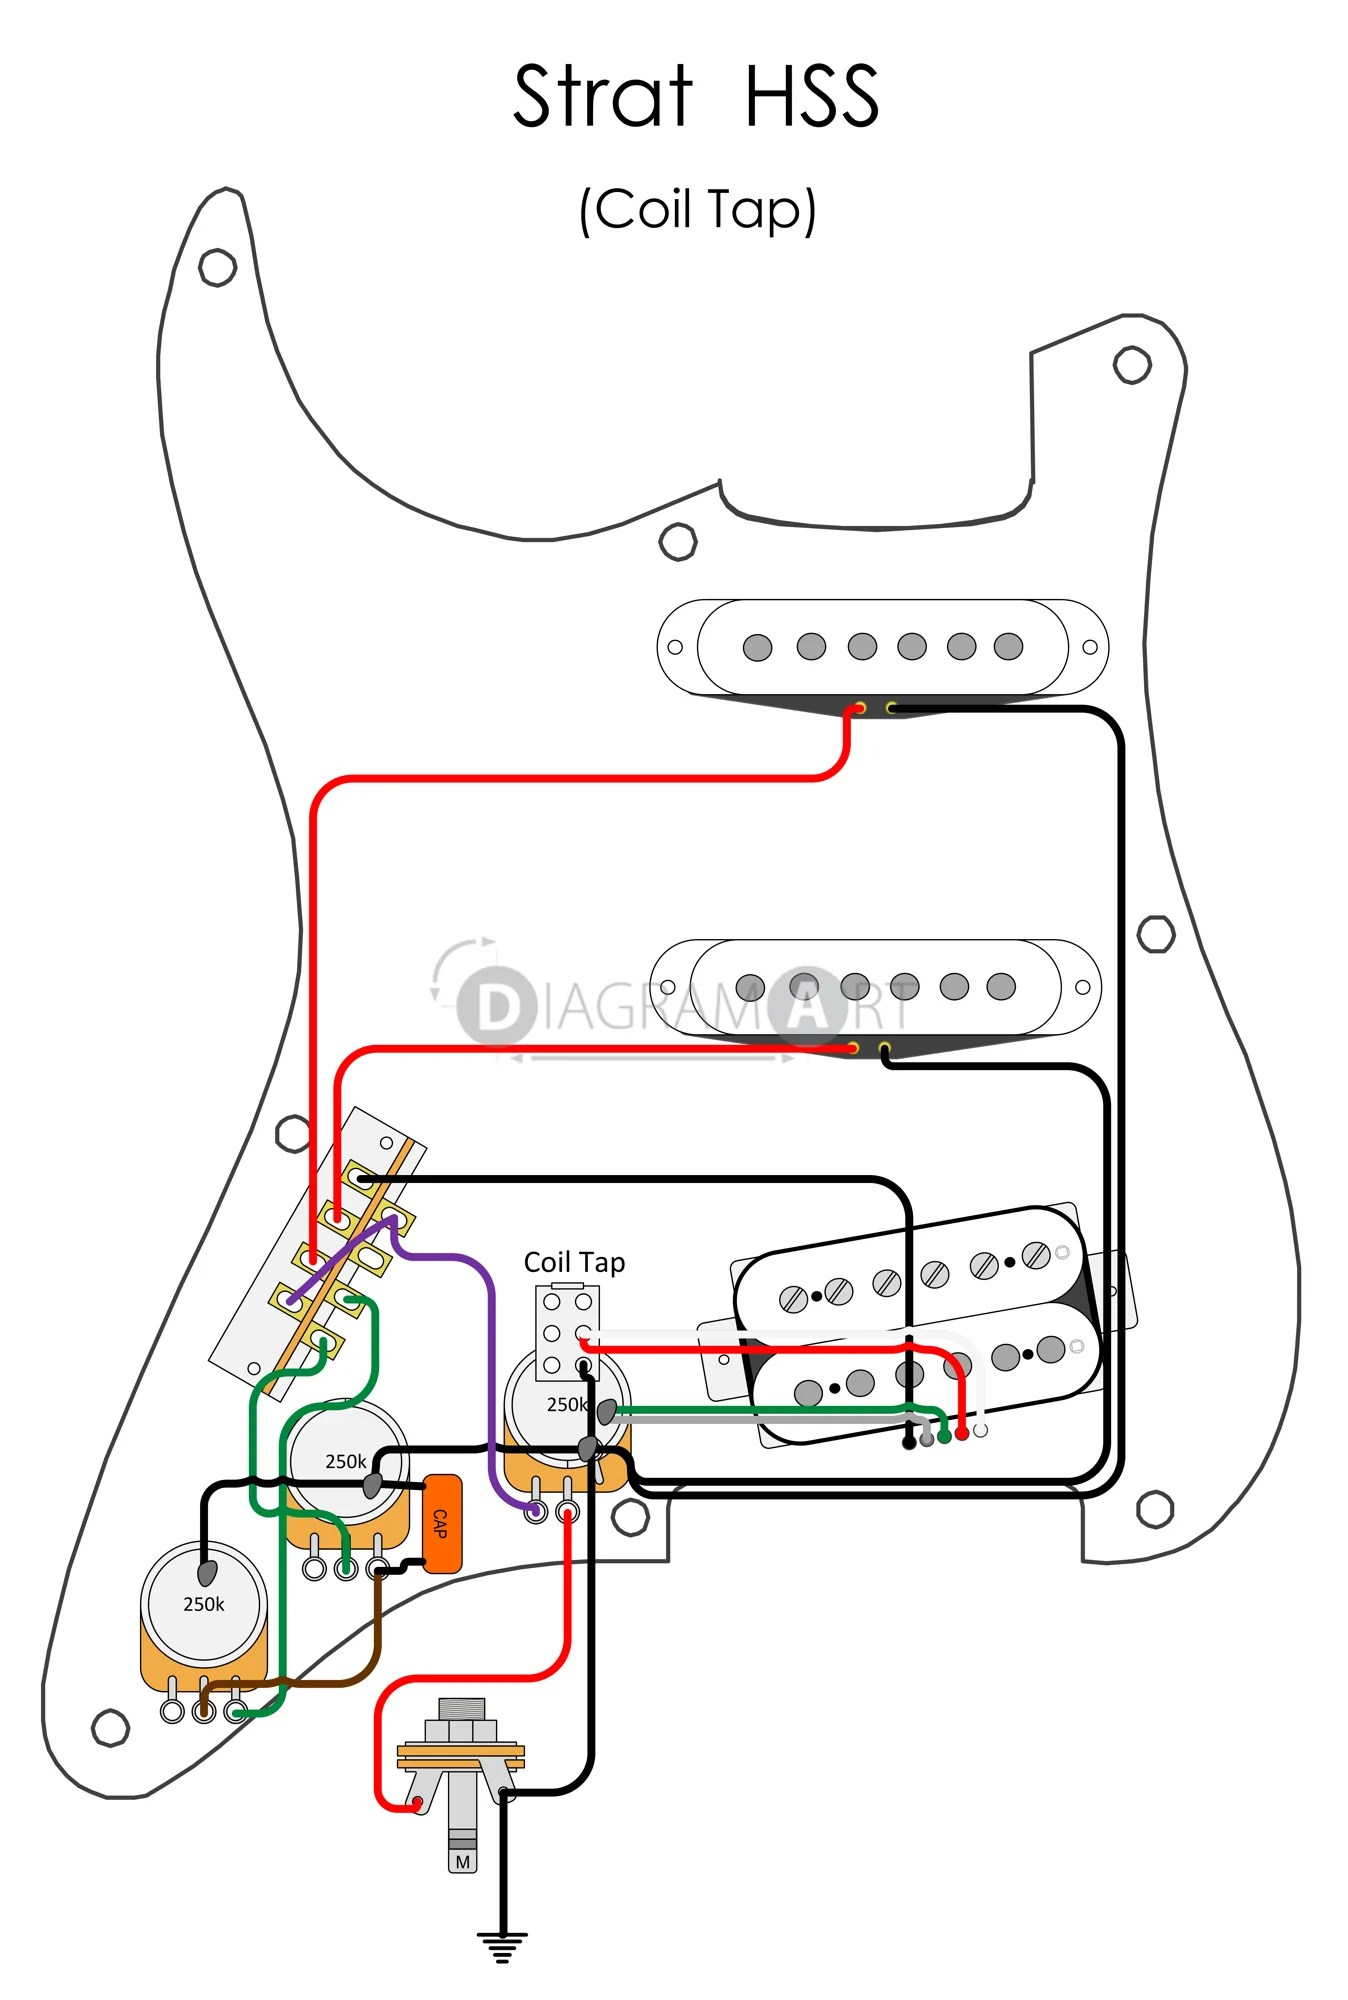 hss strat wiring diagram 1 volume tone mccb mcb electric guitar coil tap